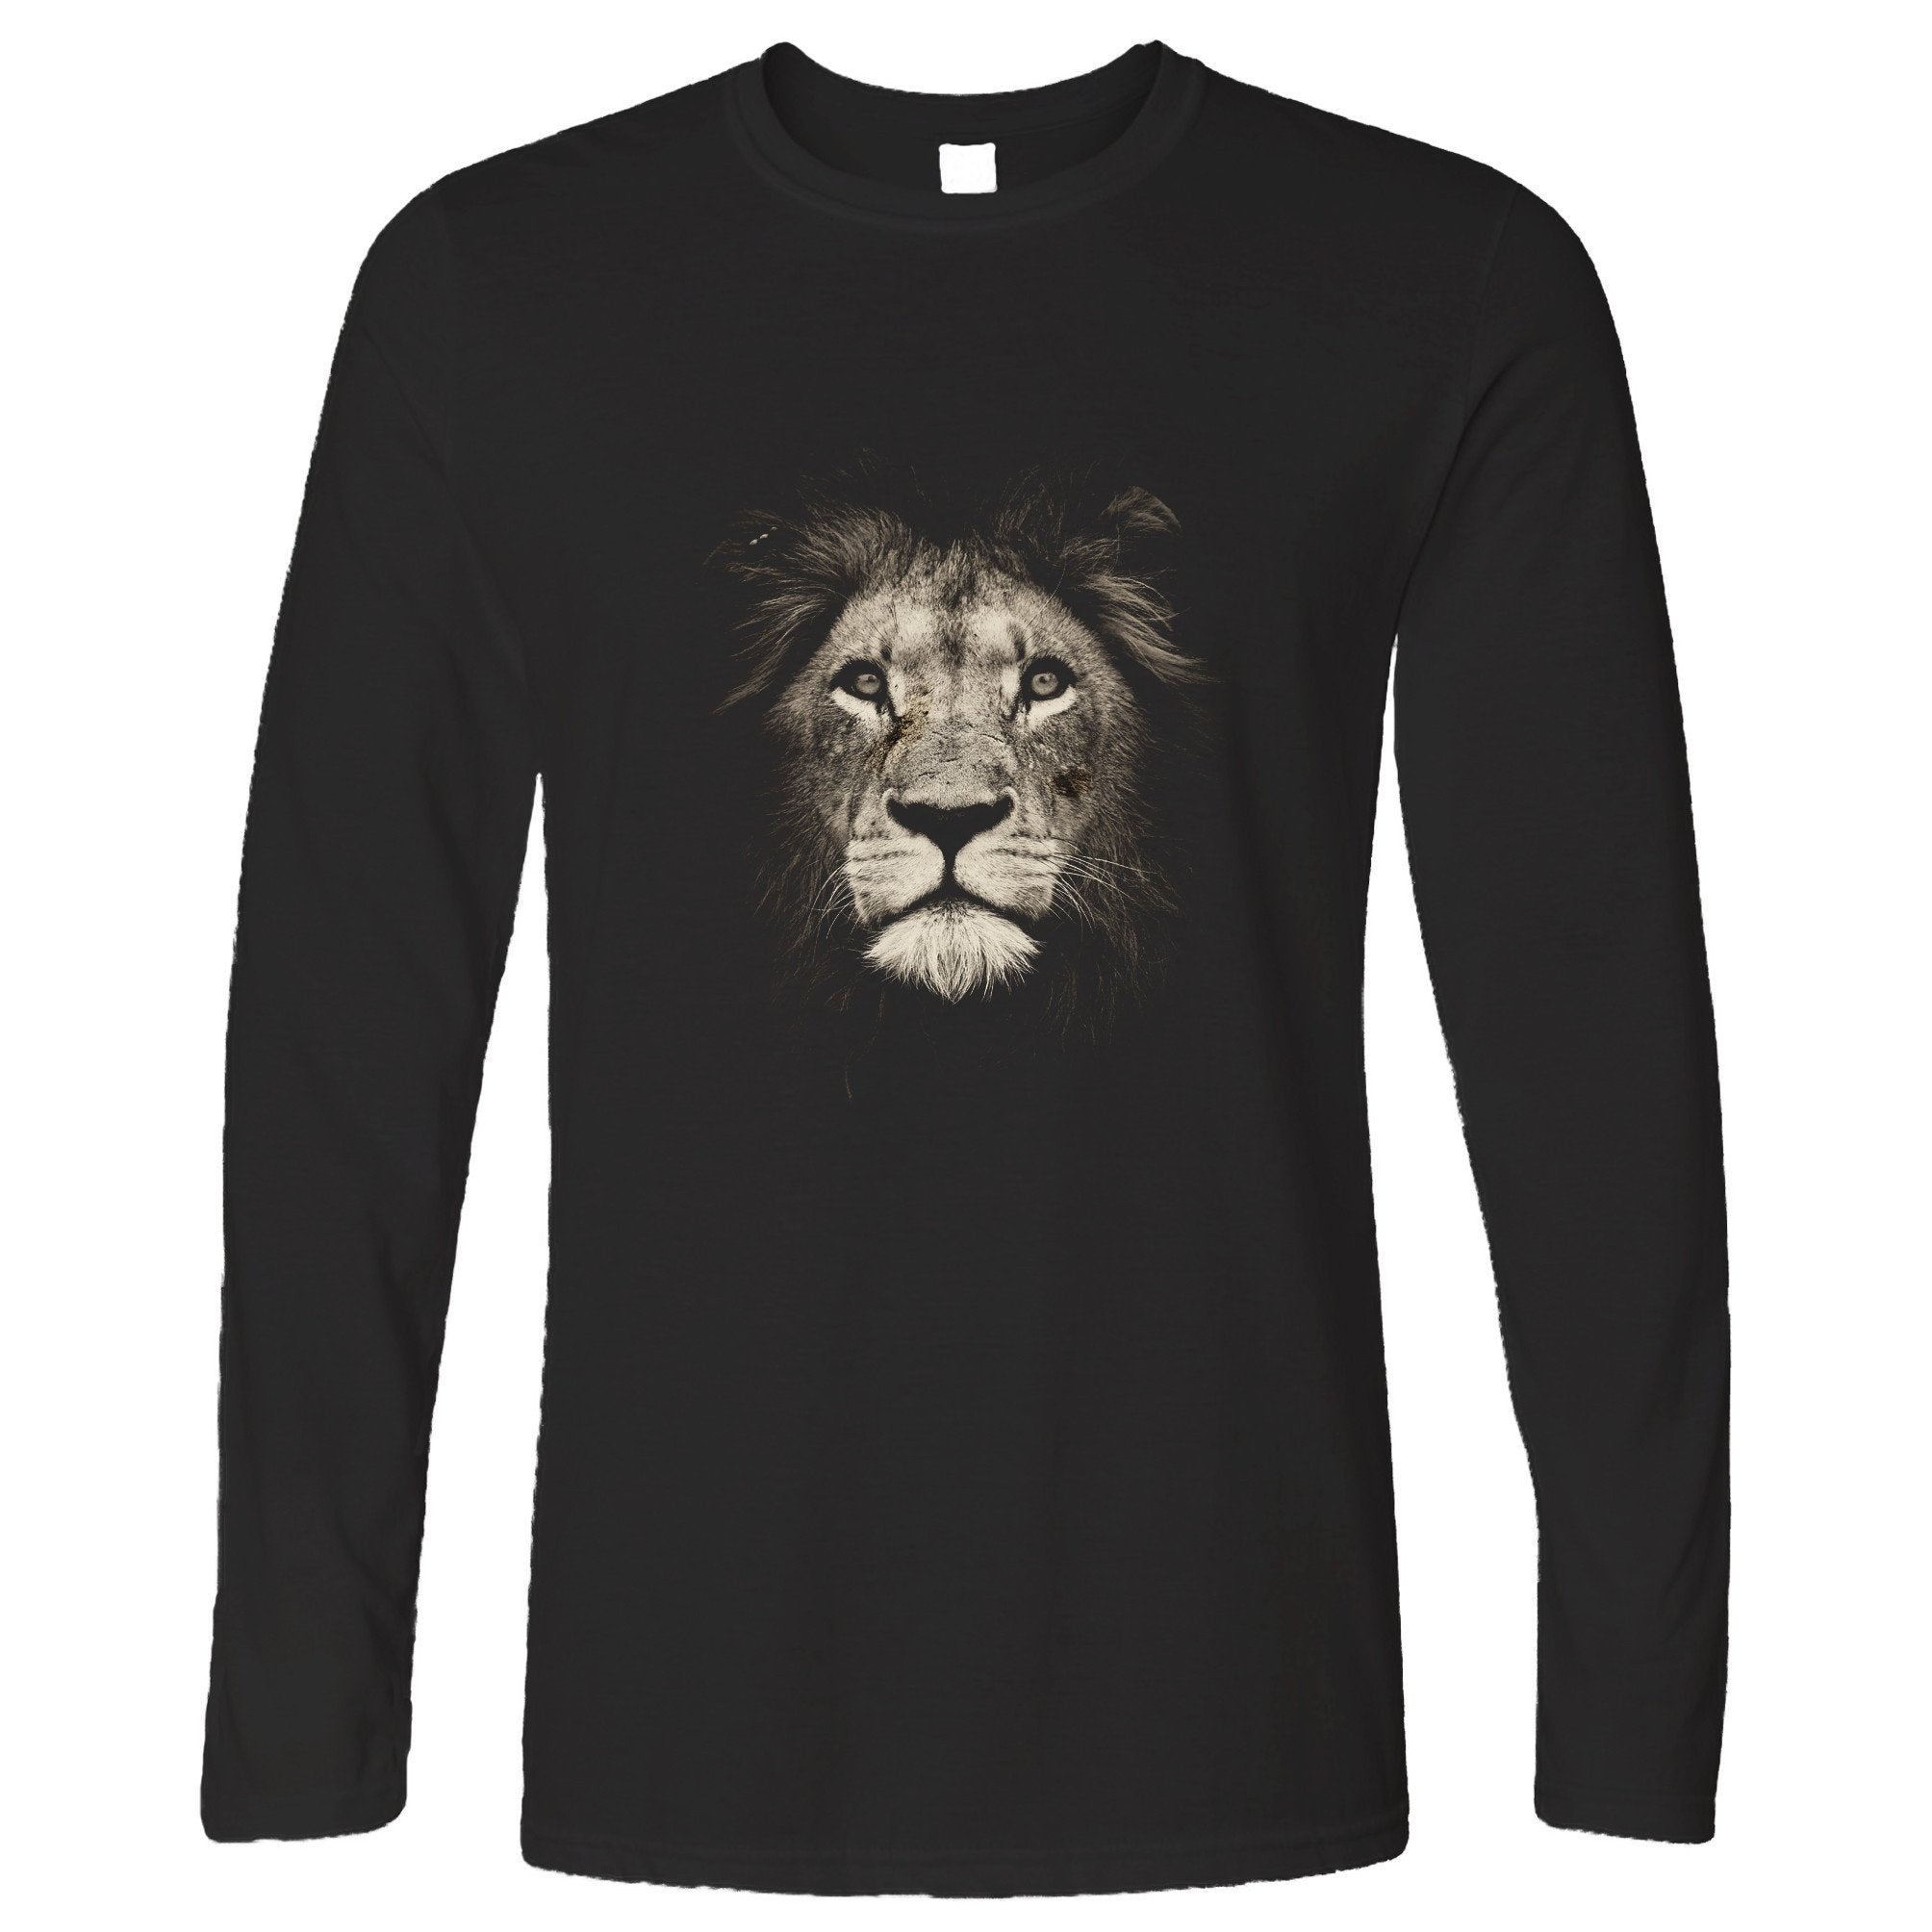 Stylish Animal Long Sleeve Photographic Lion Face Design T-Shirt